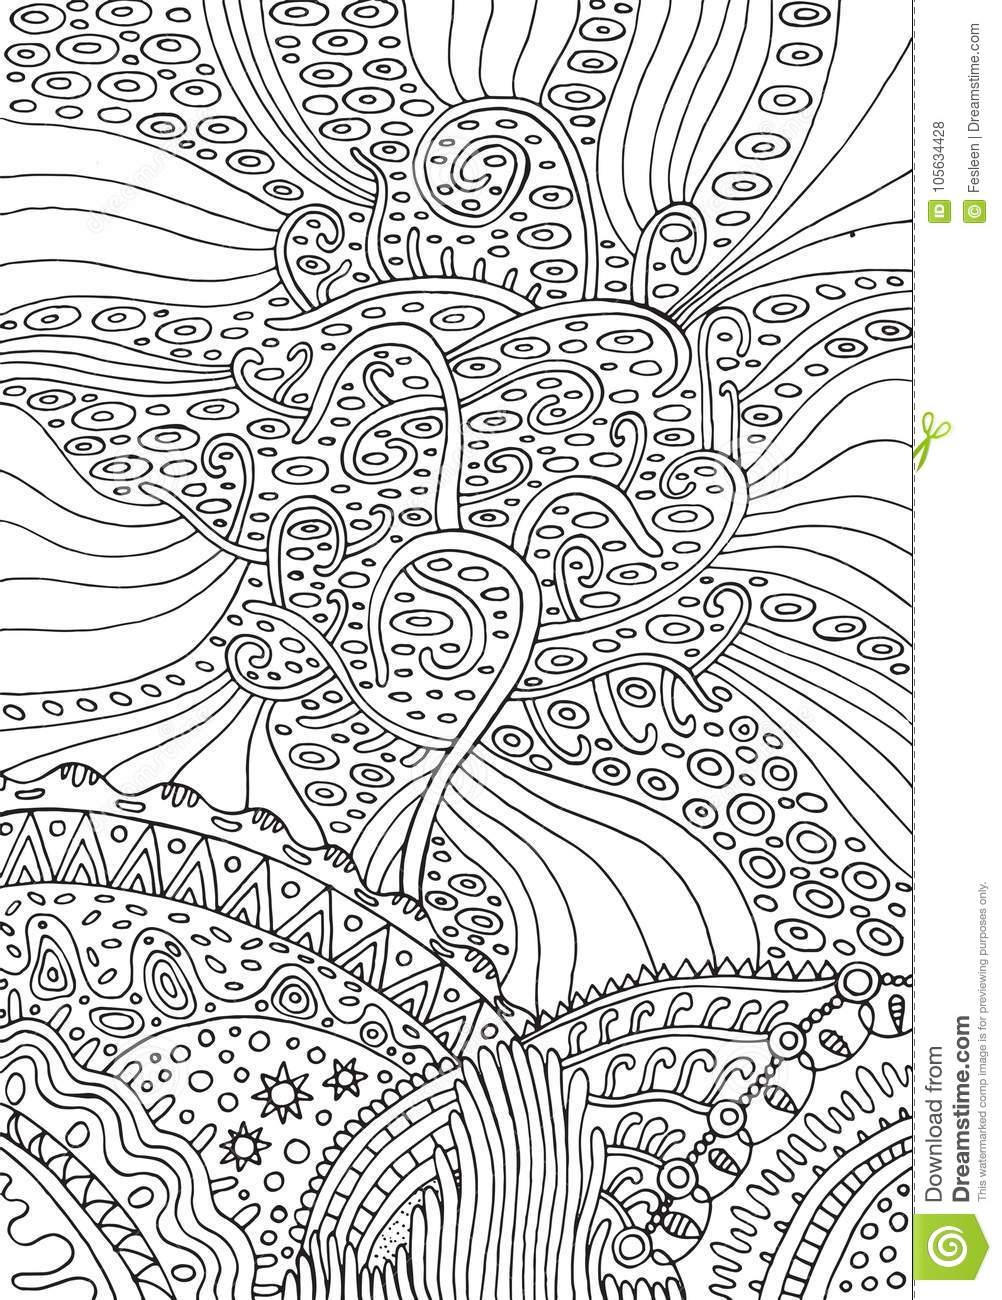 Rainbow Tree Of Life Surreal Fantasy Psychedelic Coloring Page